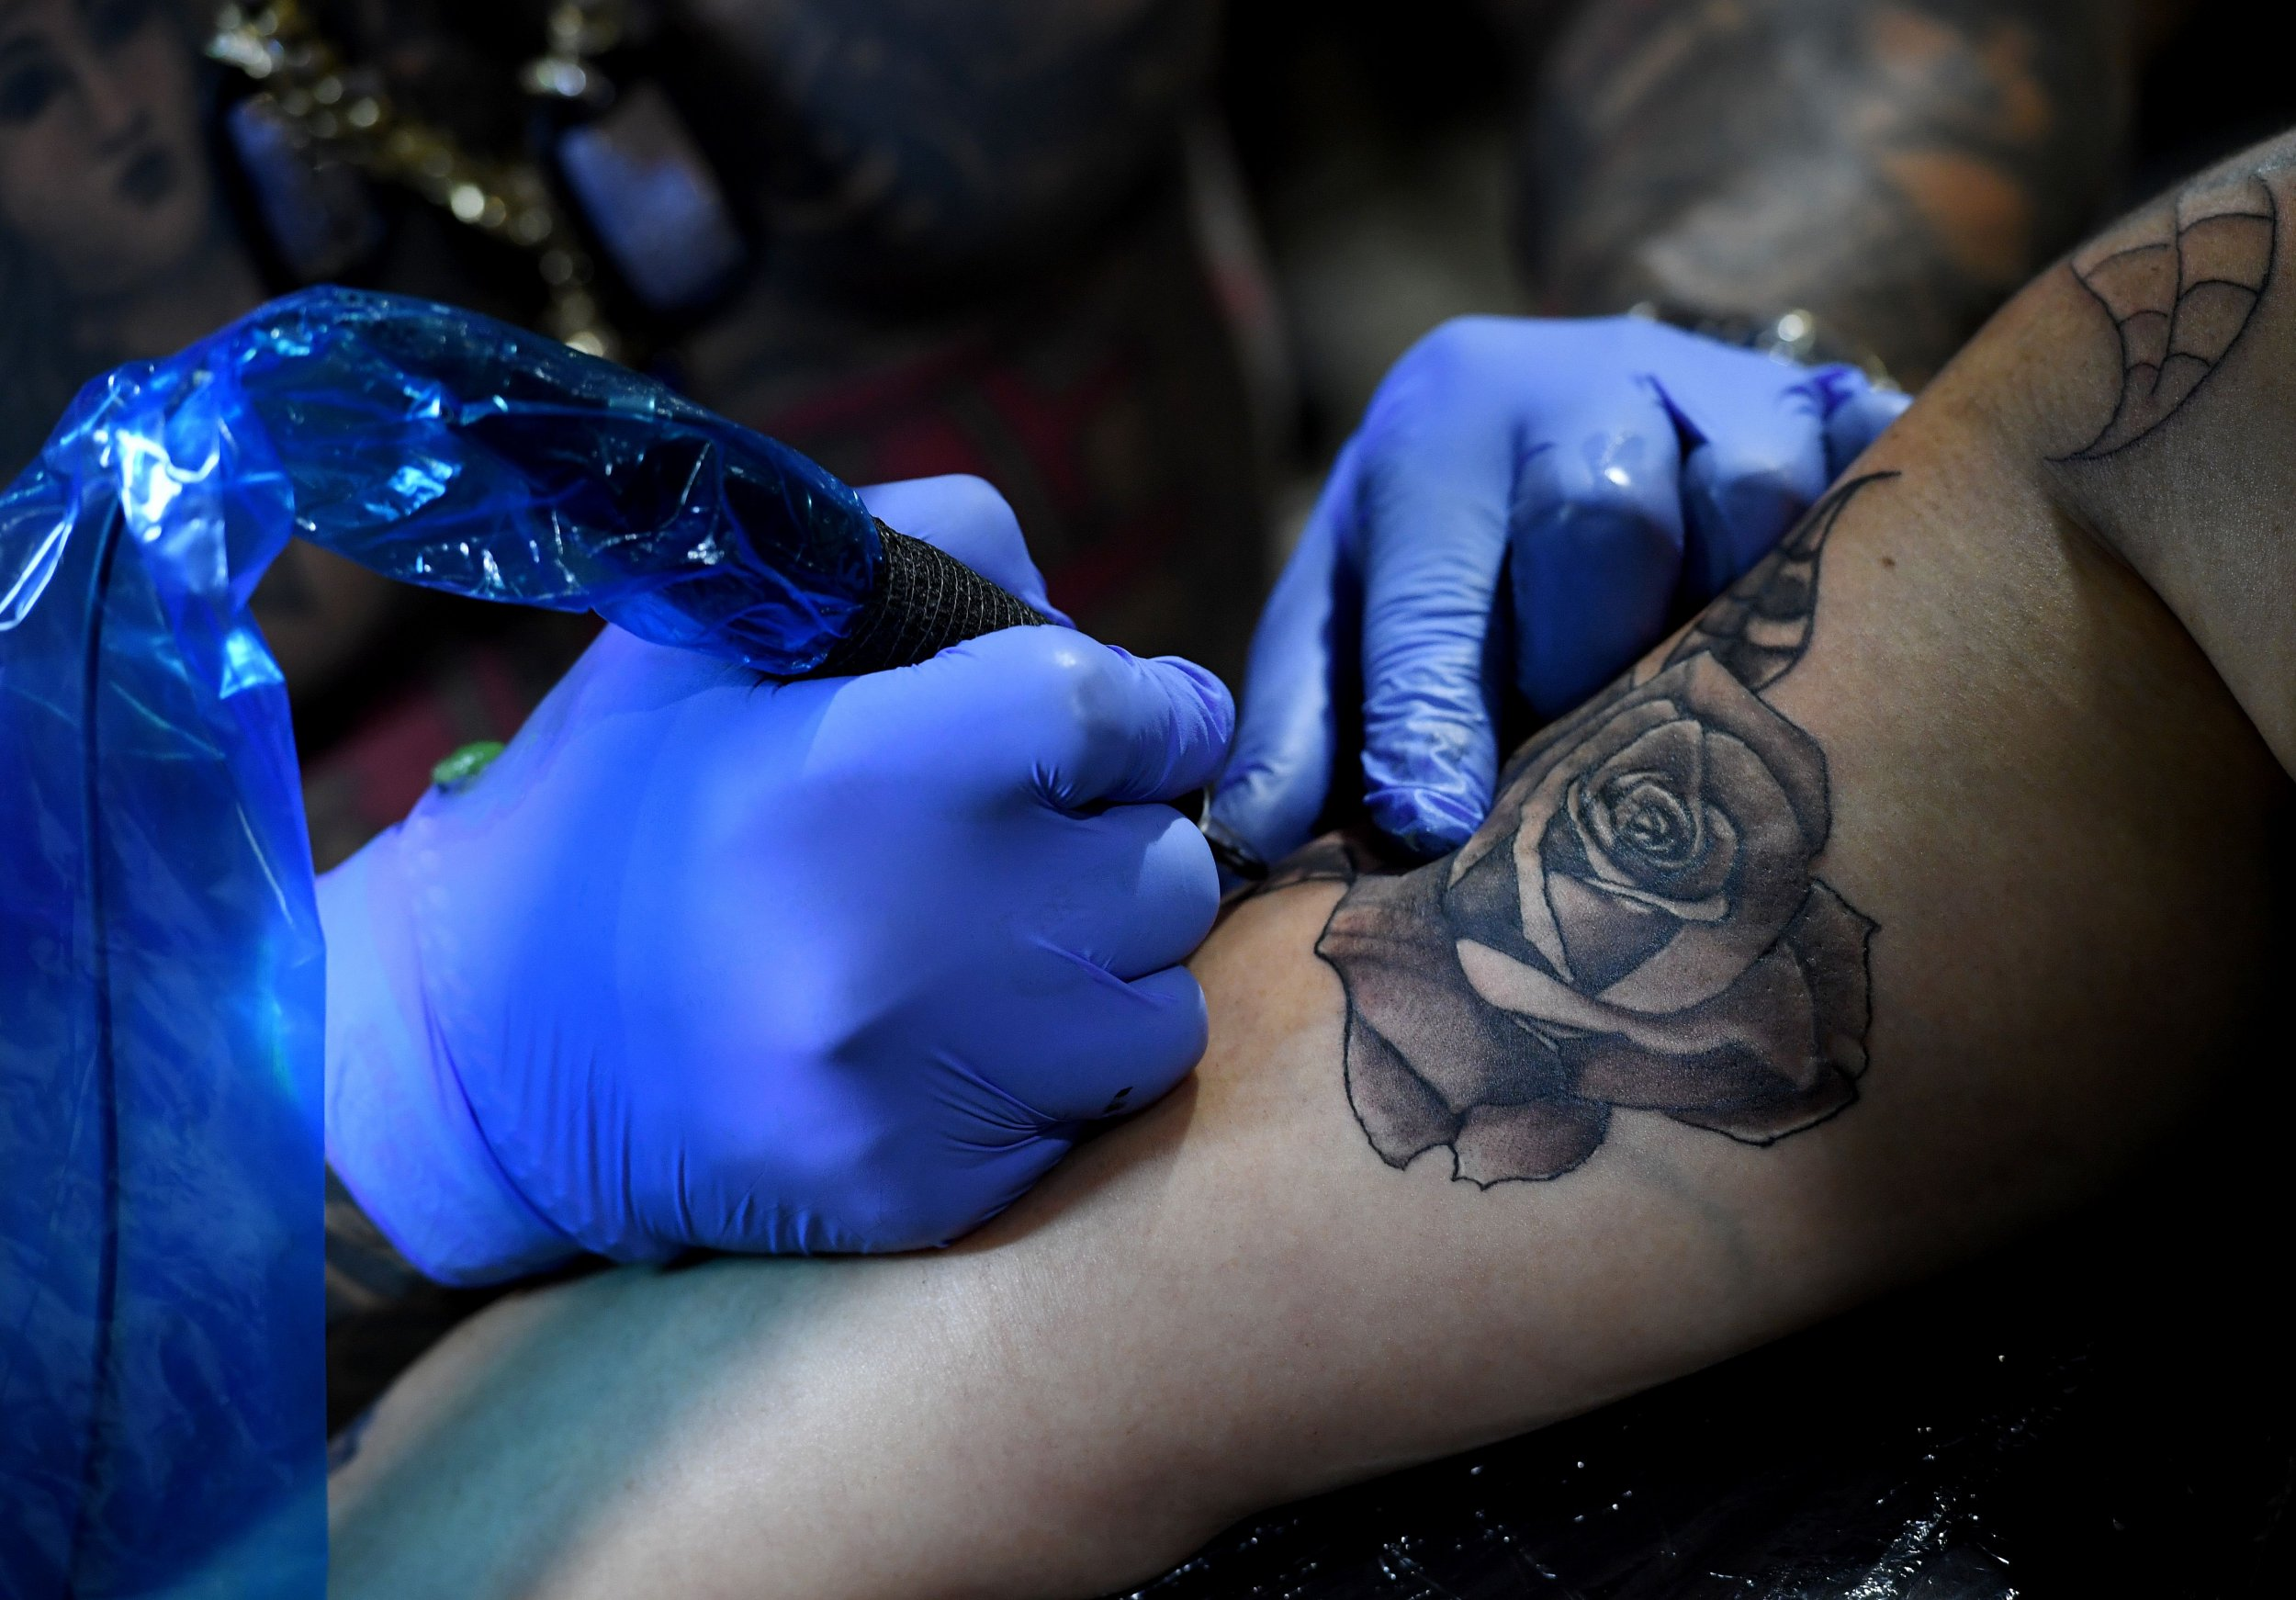 Armpit Lumps Filled With Tattoo Ink Blamed For Womans Cancer